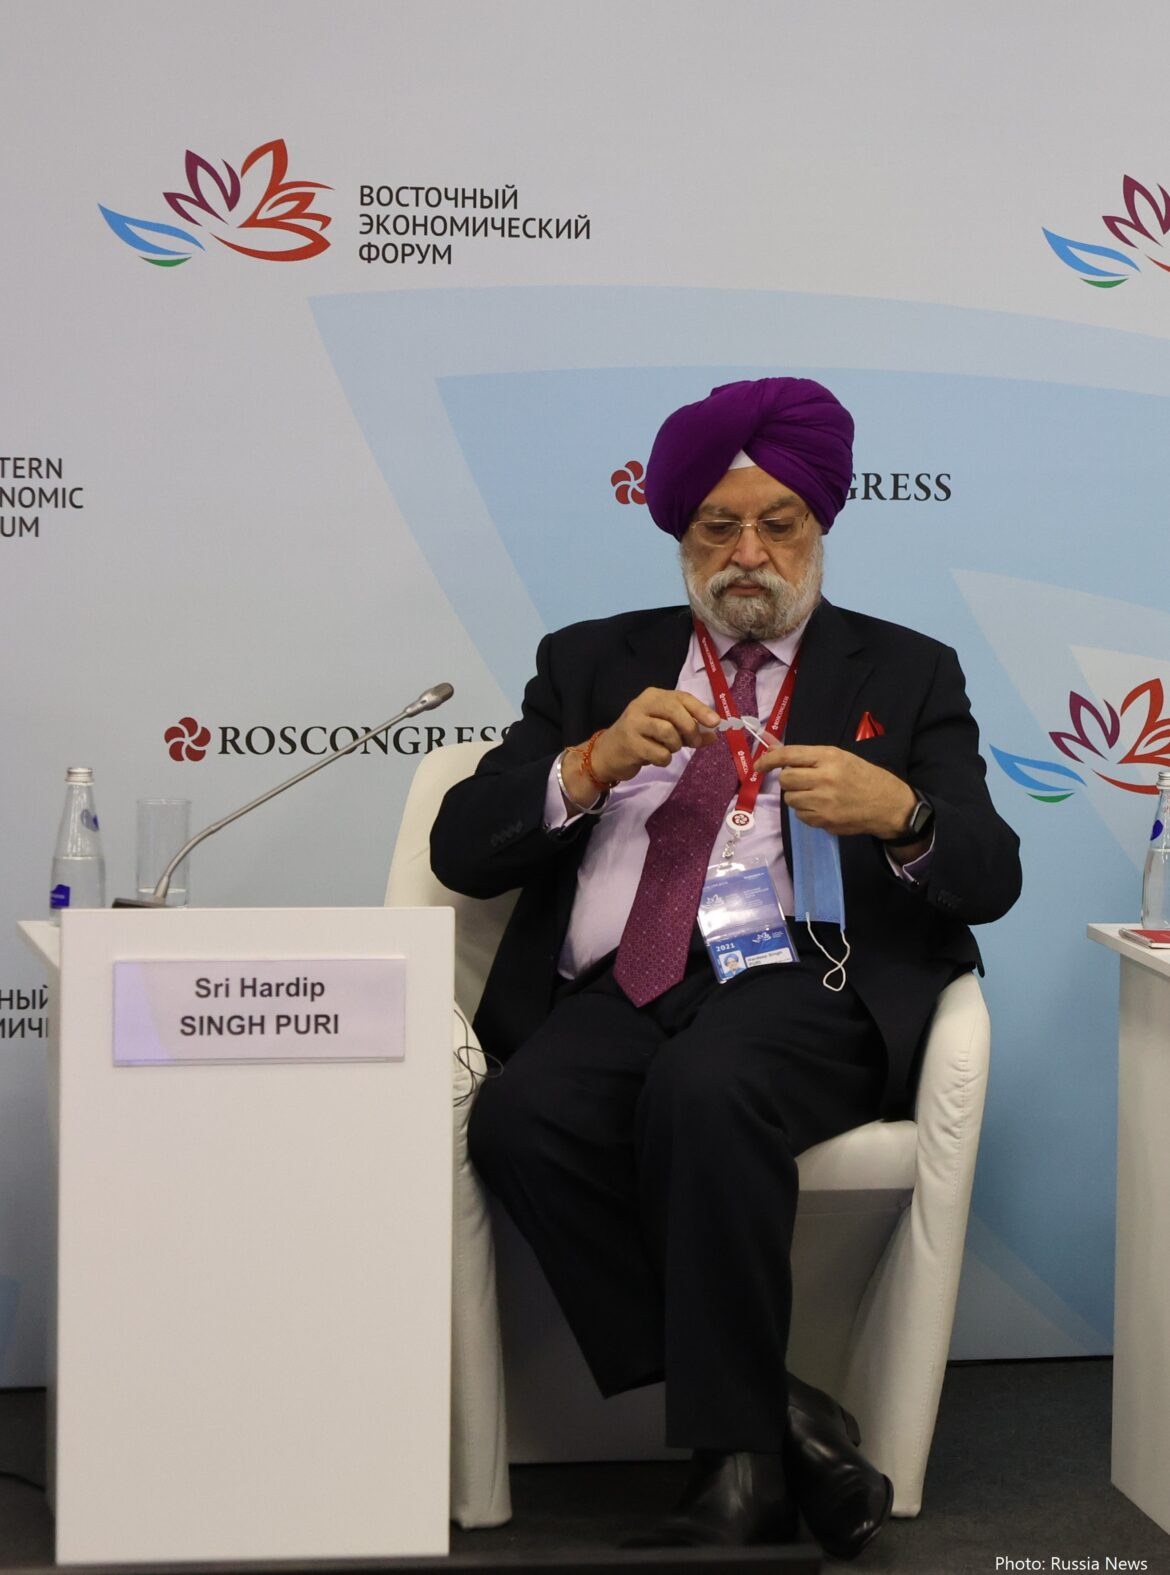 Shri Hardeep Singh Puri, the Indian Minister of Petroleum and Natural Gas: «Russia is a very important strategic partner for us in the energy sector»